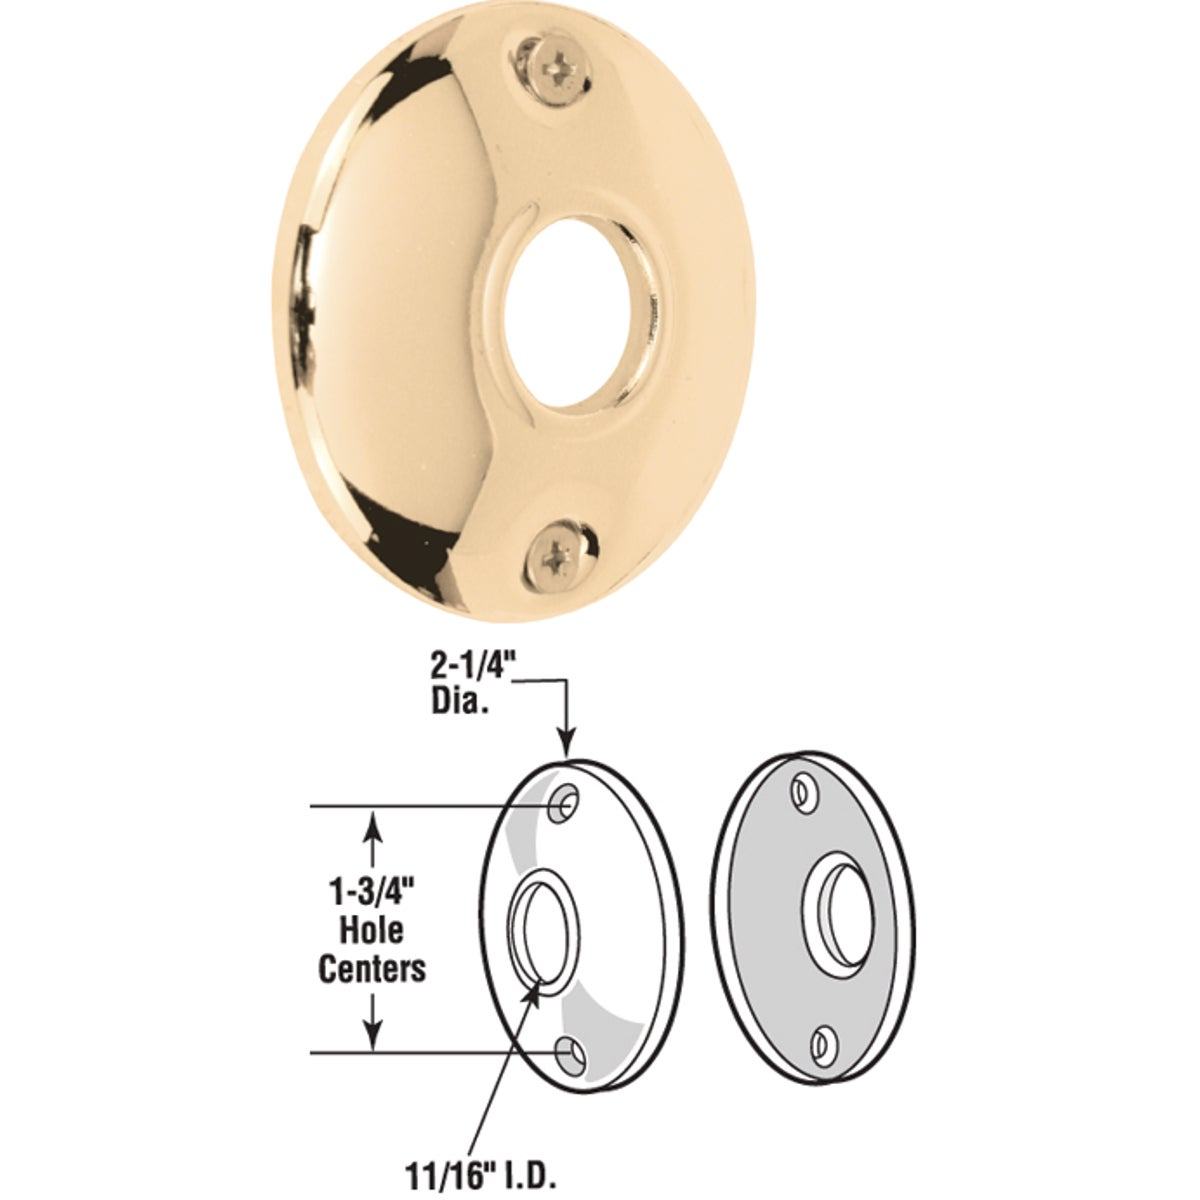 ROSSETTE BRASS PLATE - E 2282 by Prime Line Products